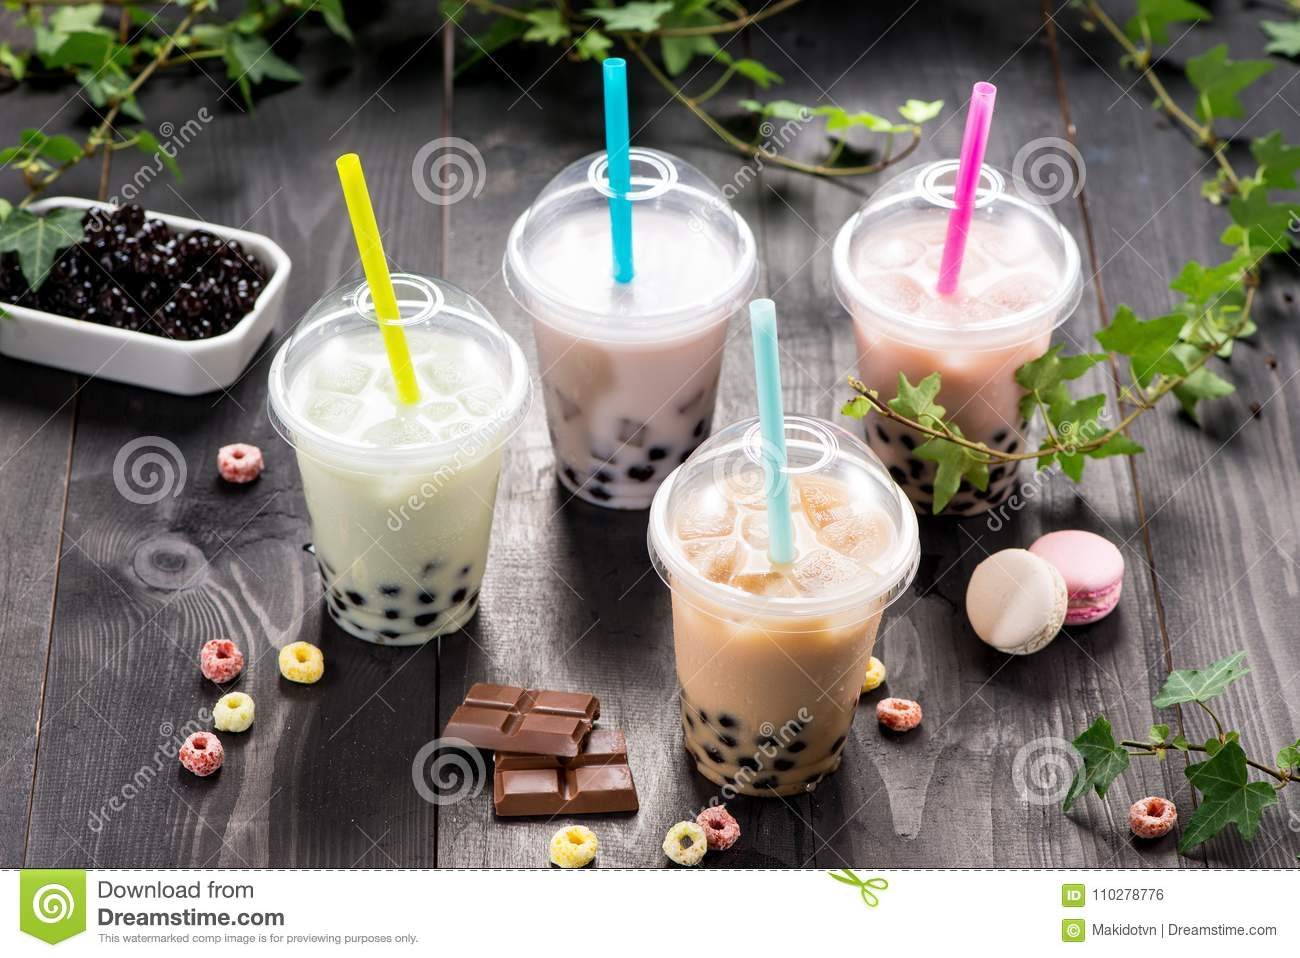 Variety of bubble tea in plastic cups with straws on a wooden ta